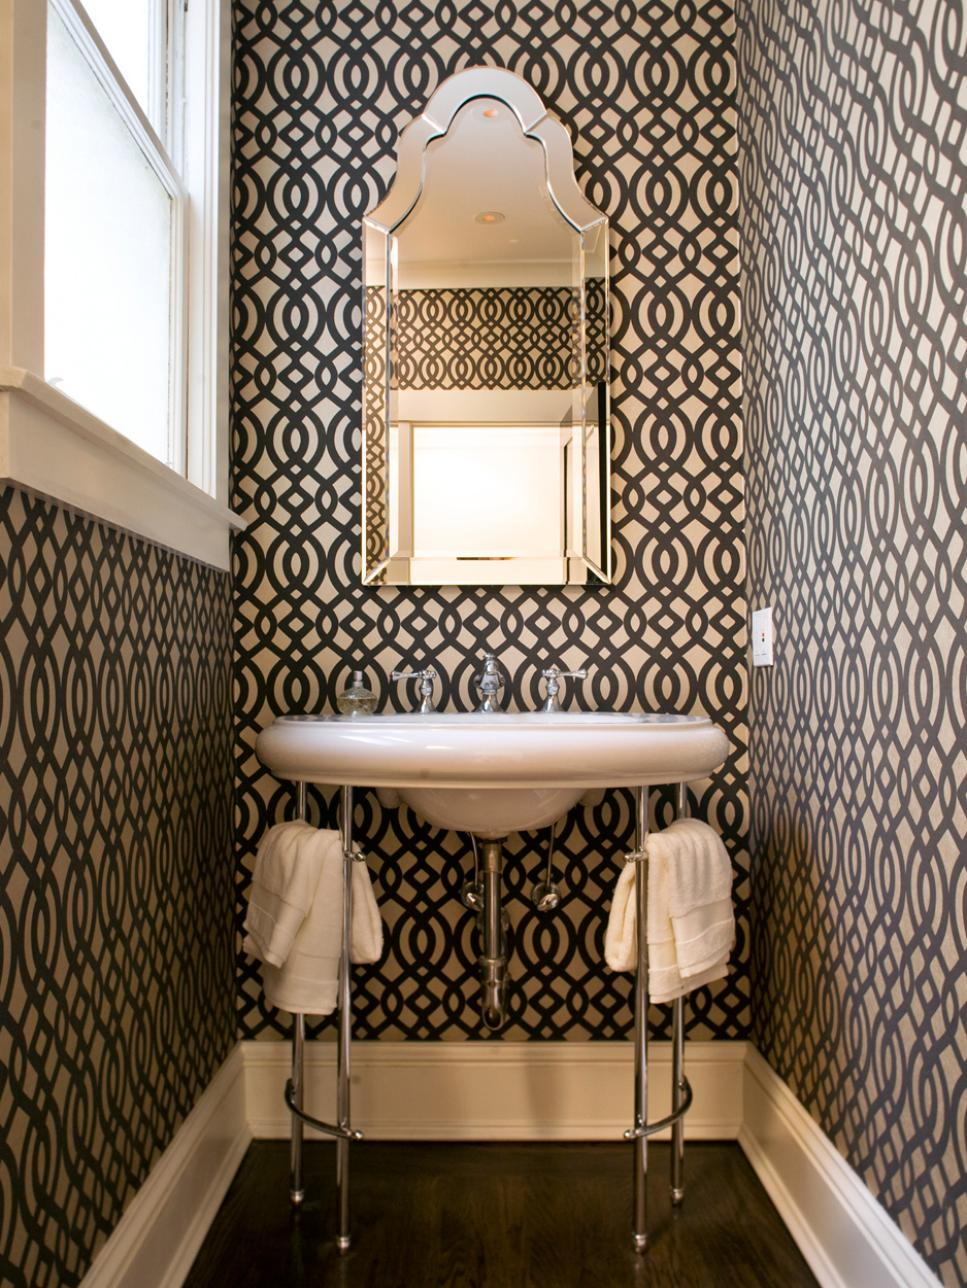 . 20 Small Bathroom Design Ideas   HGTV